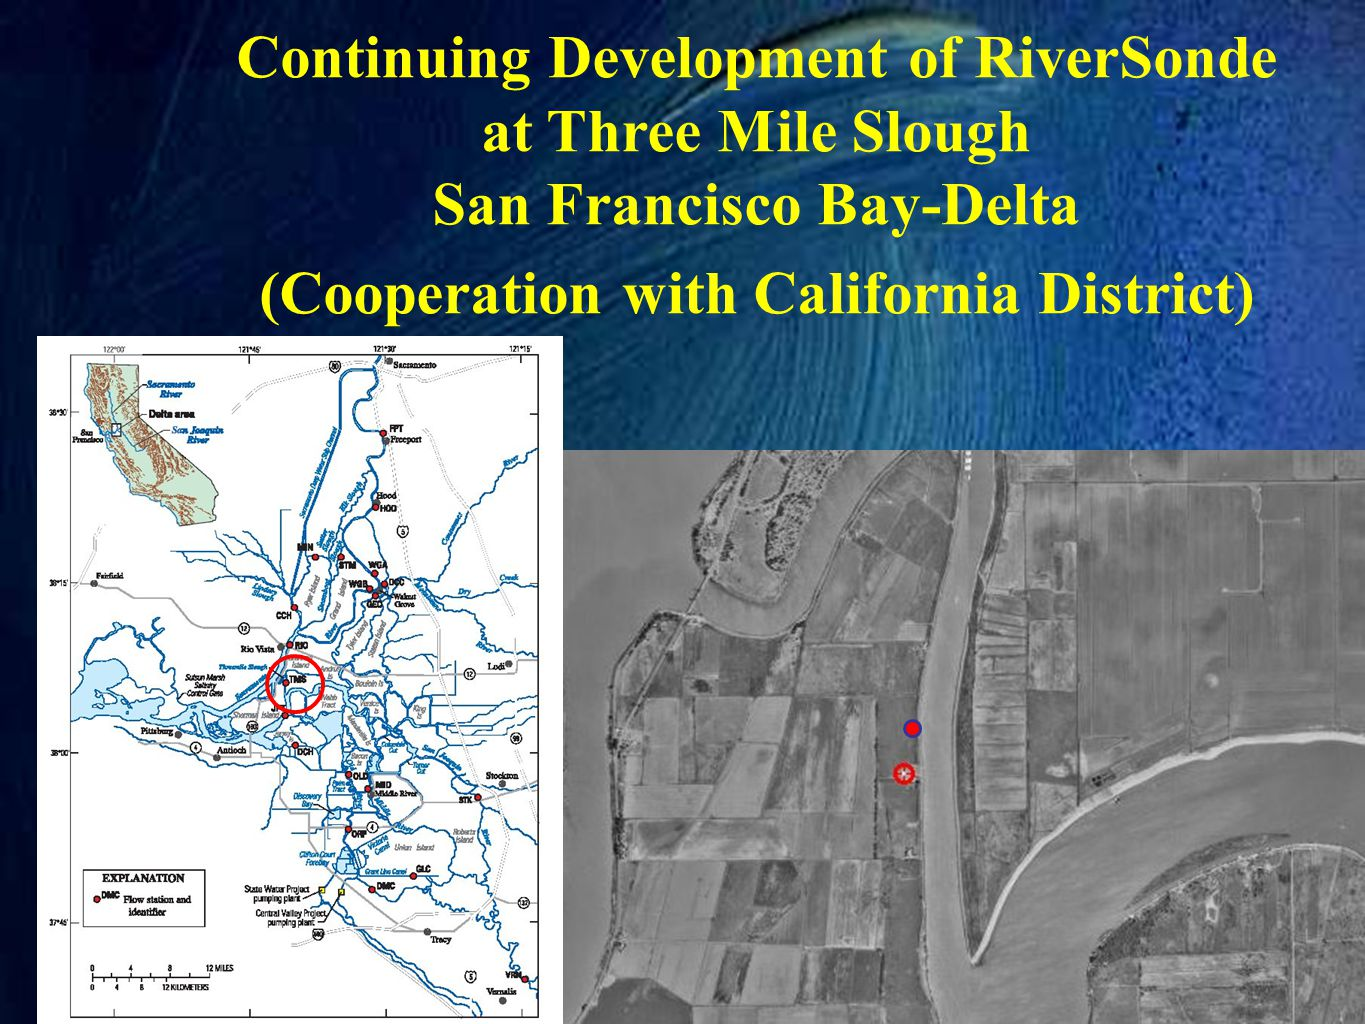 Continuing Development of RiverSonde at Three Mile Slough San Francisco Bay-Delta (Cooperation with California District)